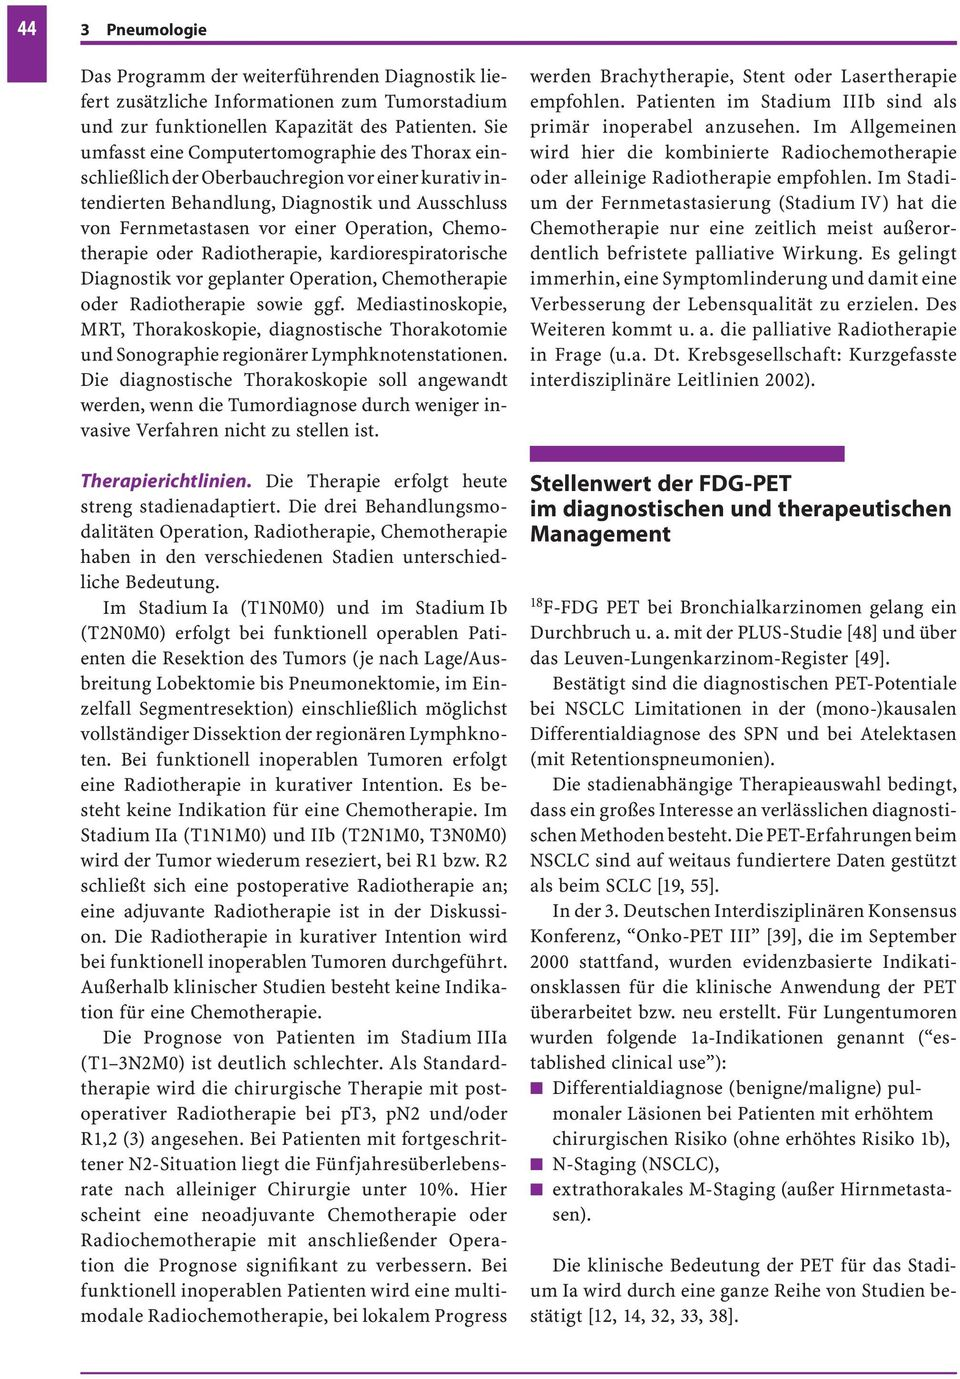 Chemotherapie oder Radiotherapie, kardiorespiratorische Diagnostik vor geplanter Operation, Chemotherapie oder Radiotherapie sowie ggf.